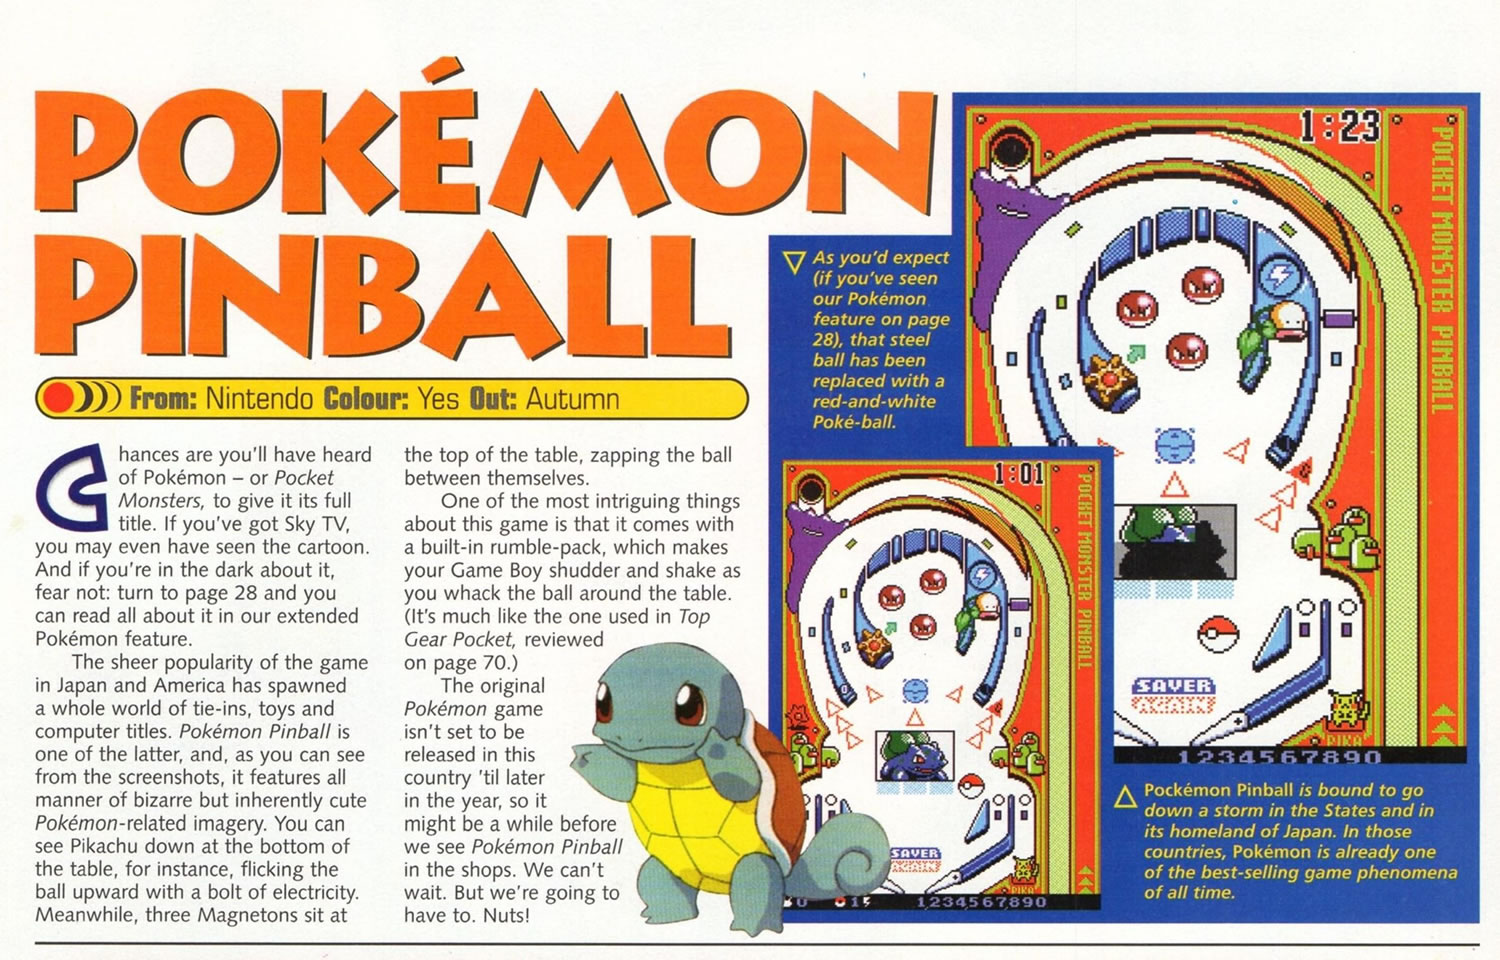 Planet GB UK Issue 1 Summer 1999 Pokemon Pinball Preview